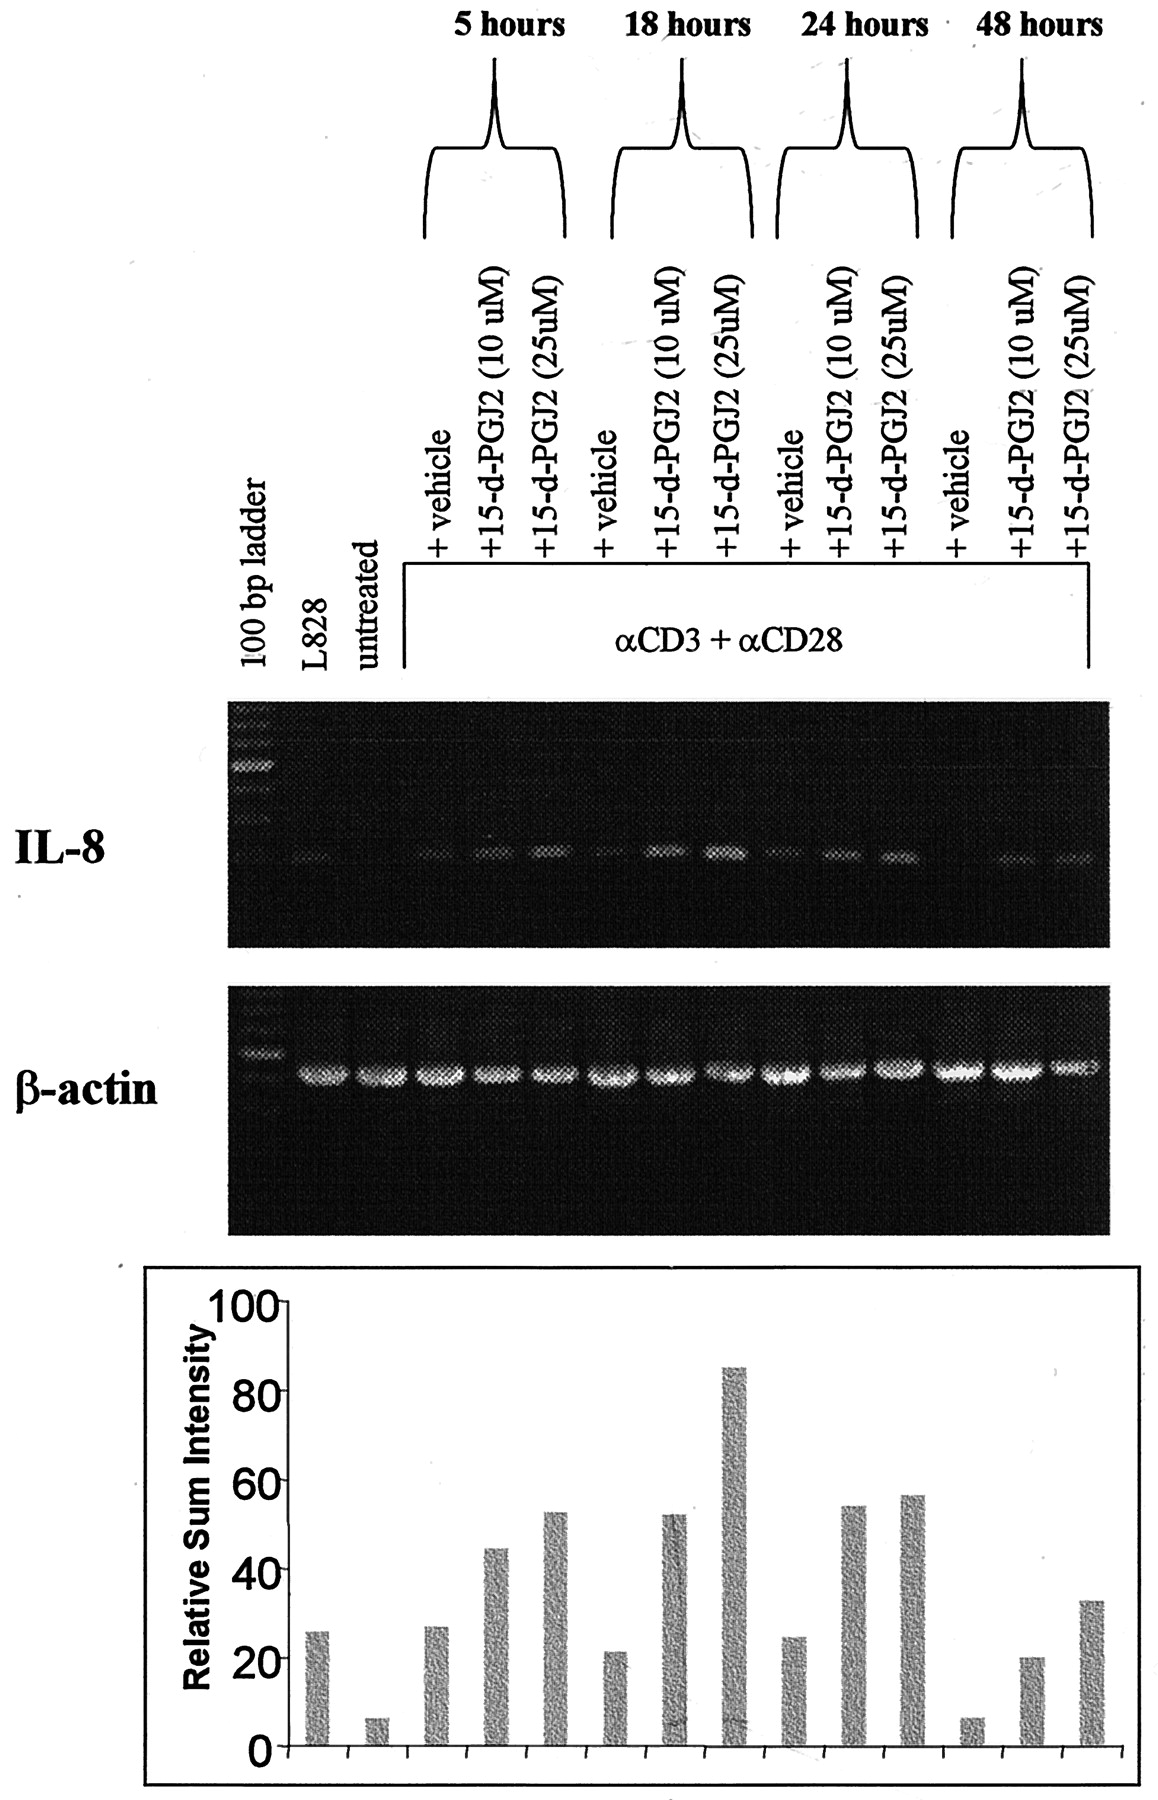 15-Deoxy-Δ12,1412,14-PGJ2 Induces IL-8 Production in Human T Cells